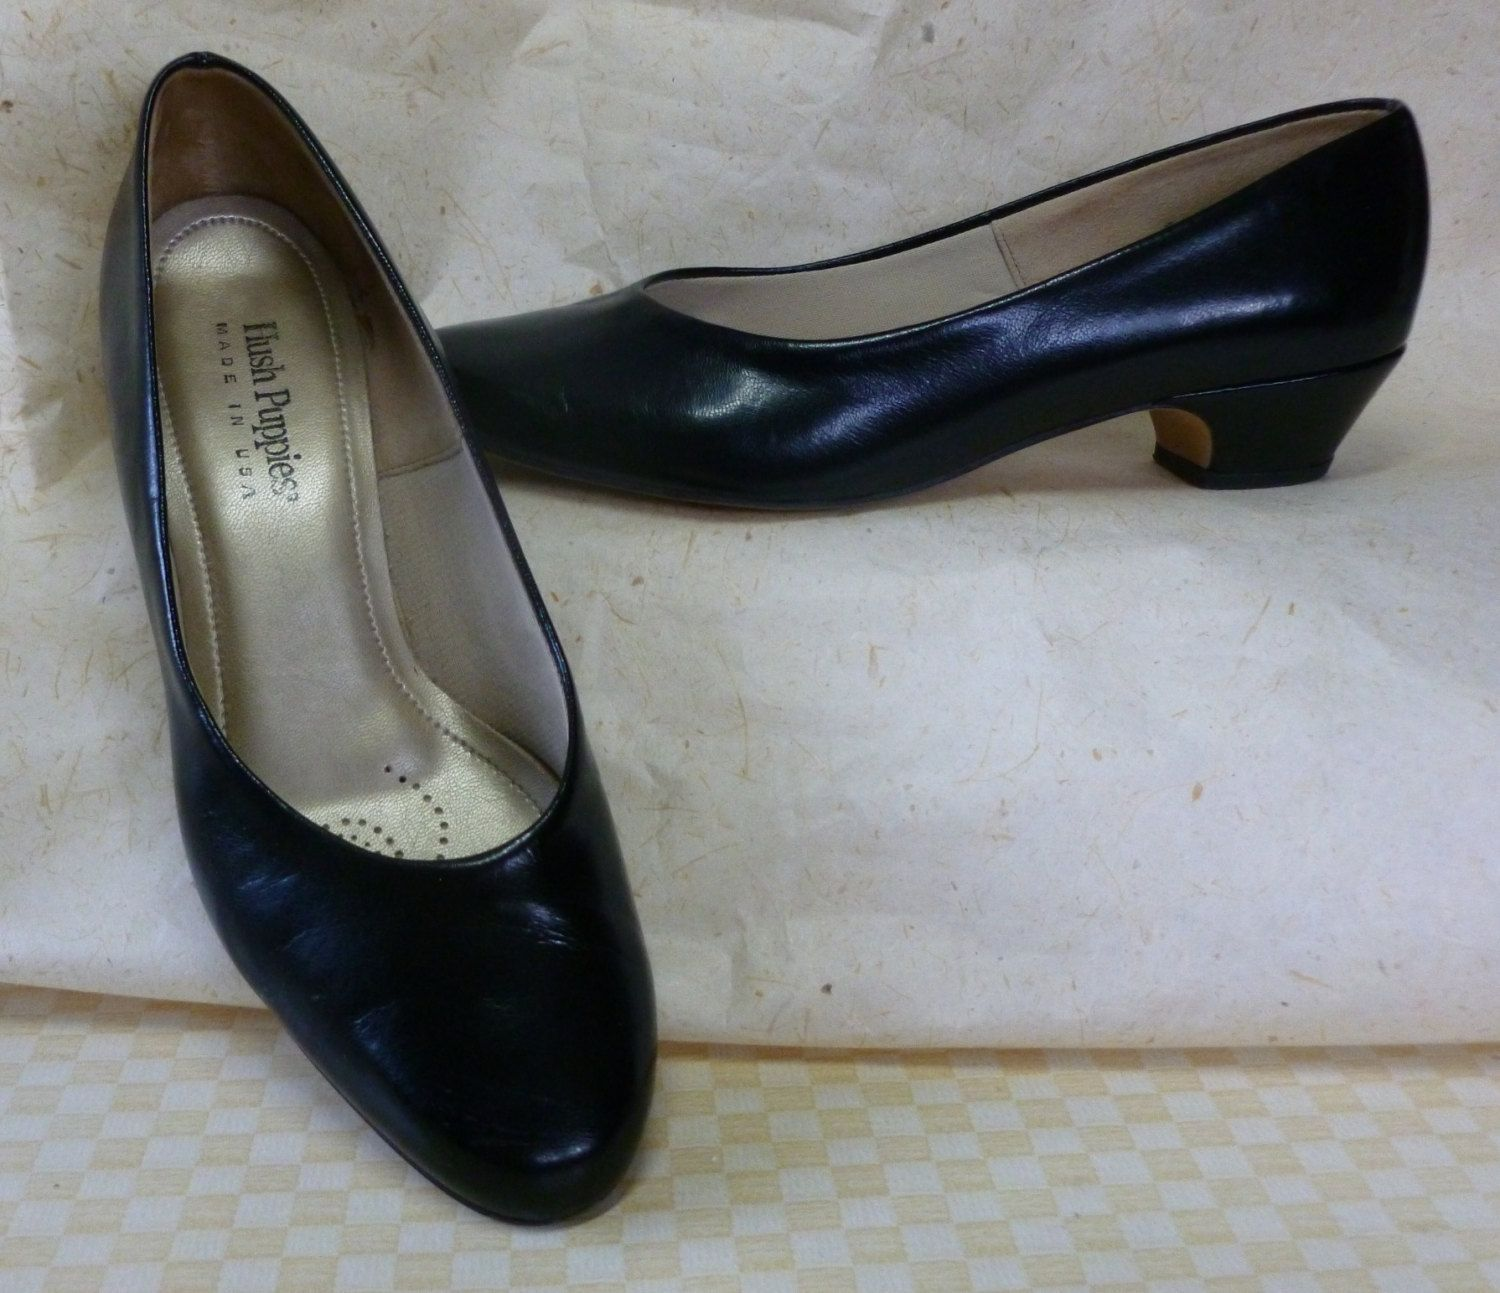 Vintage Size 9 M Black Pump Dress Shoe By Hush Puppies Made In Usa Black Pumps Me Too Shoes Pump Dress